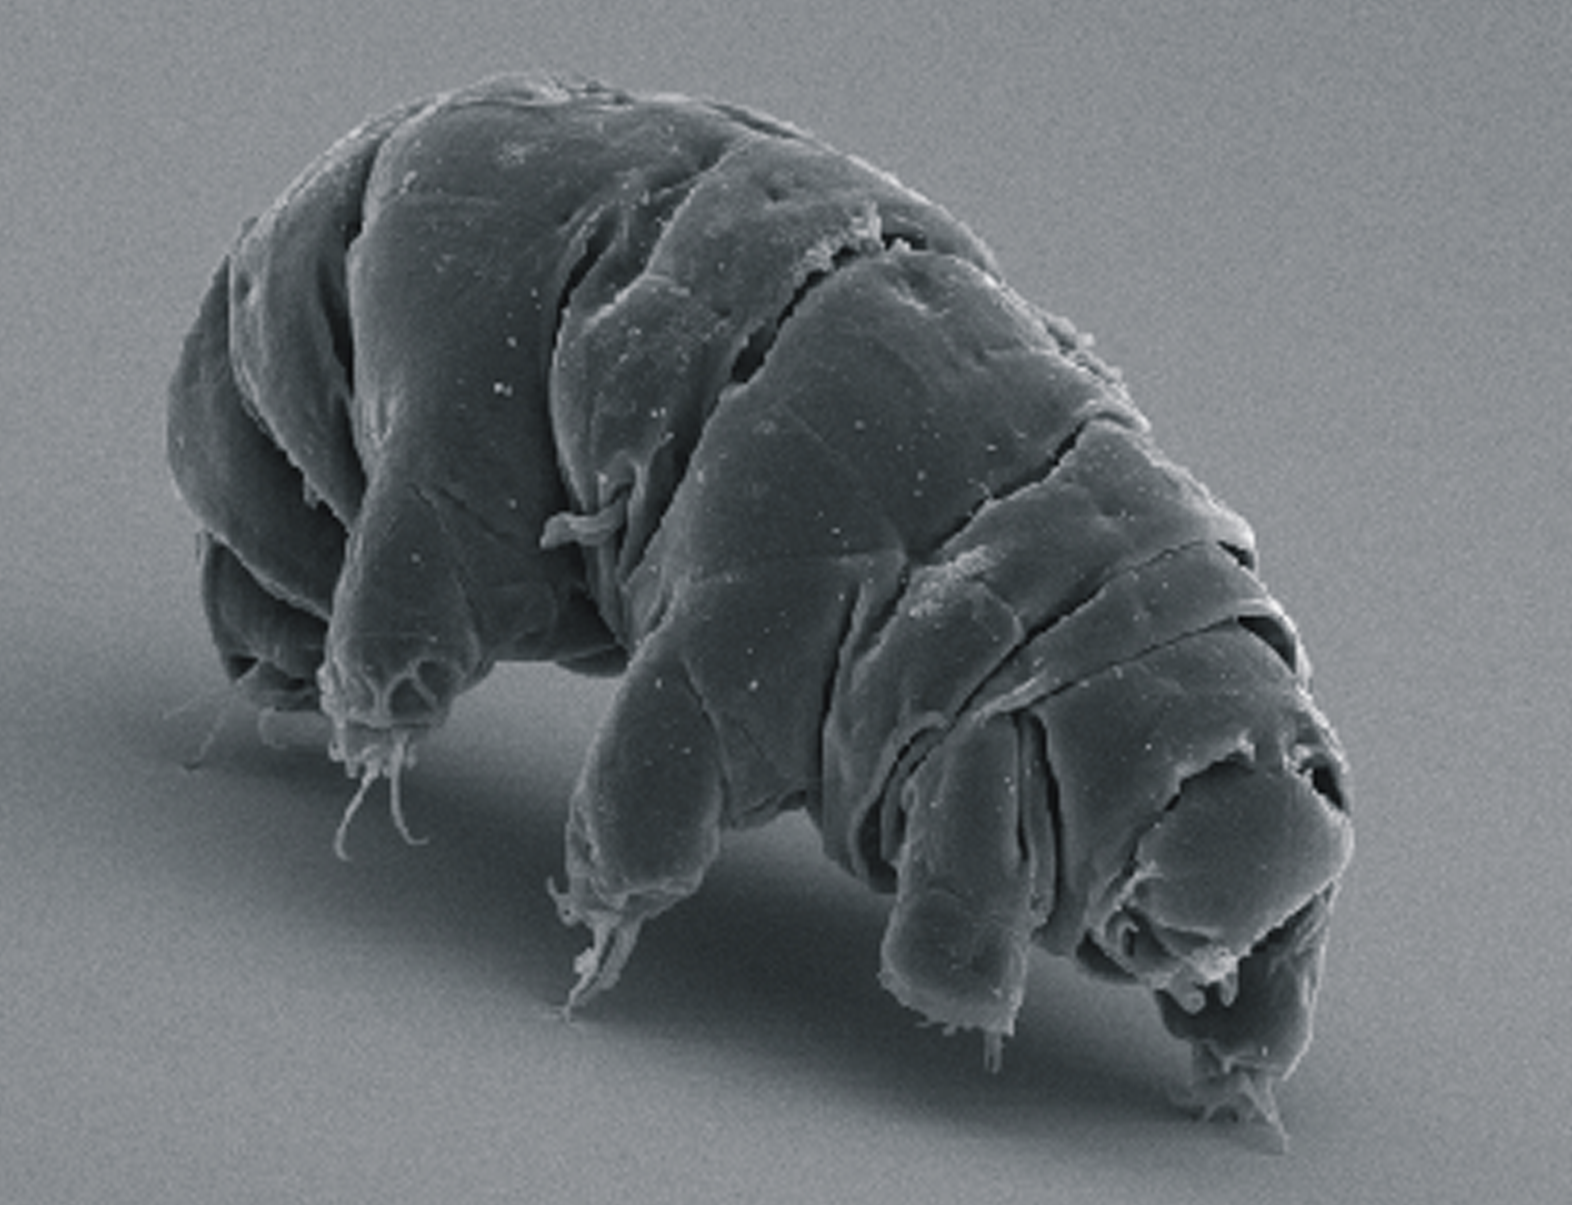 Milnesium tardigradum on the move. Image via doi:10.1371/journal.pone.0045682